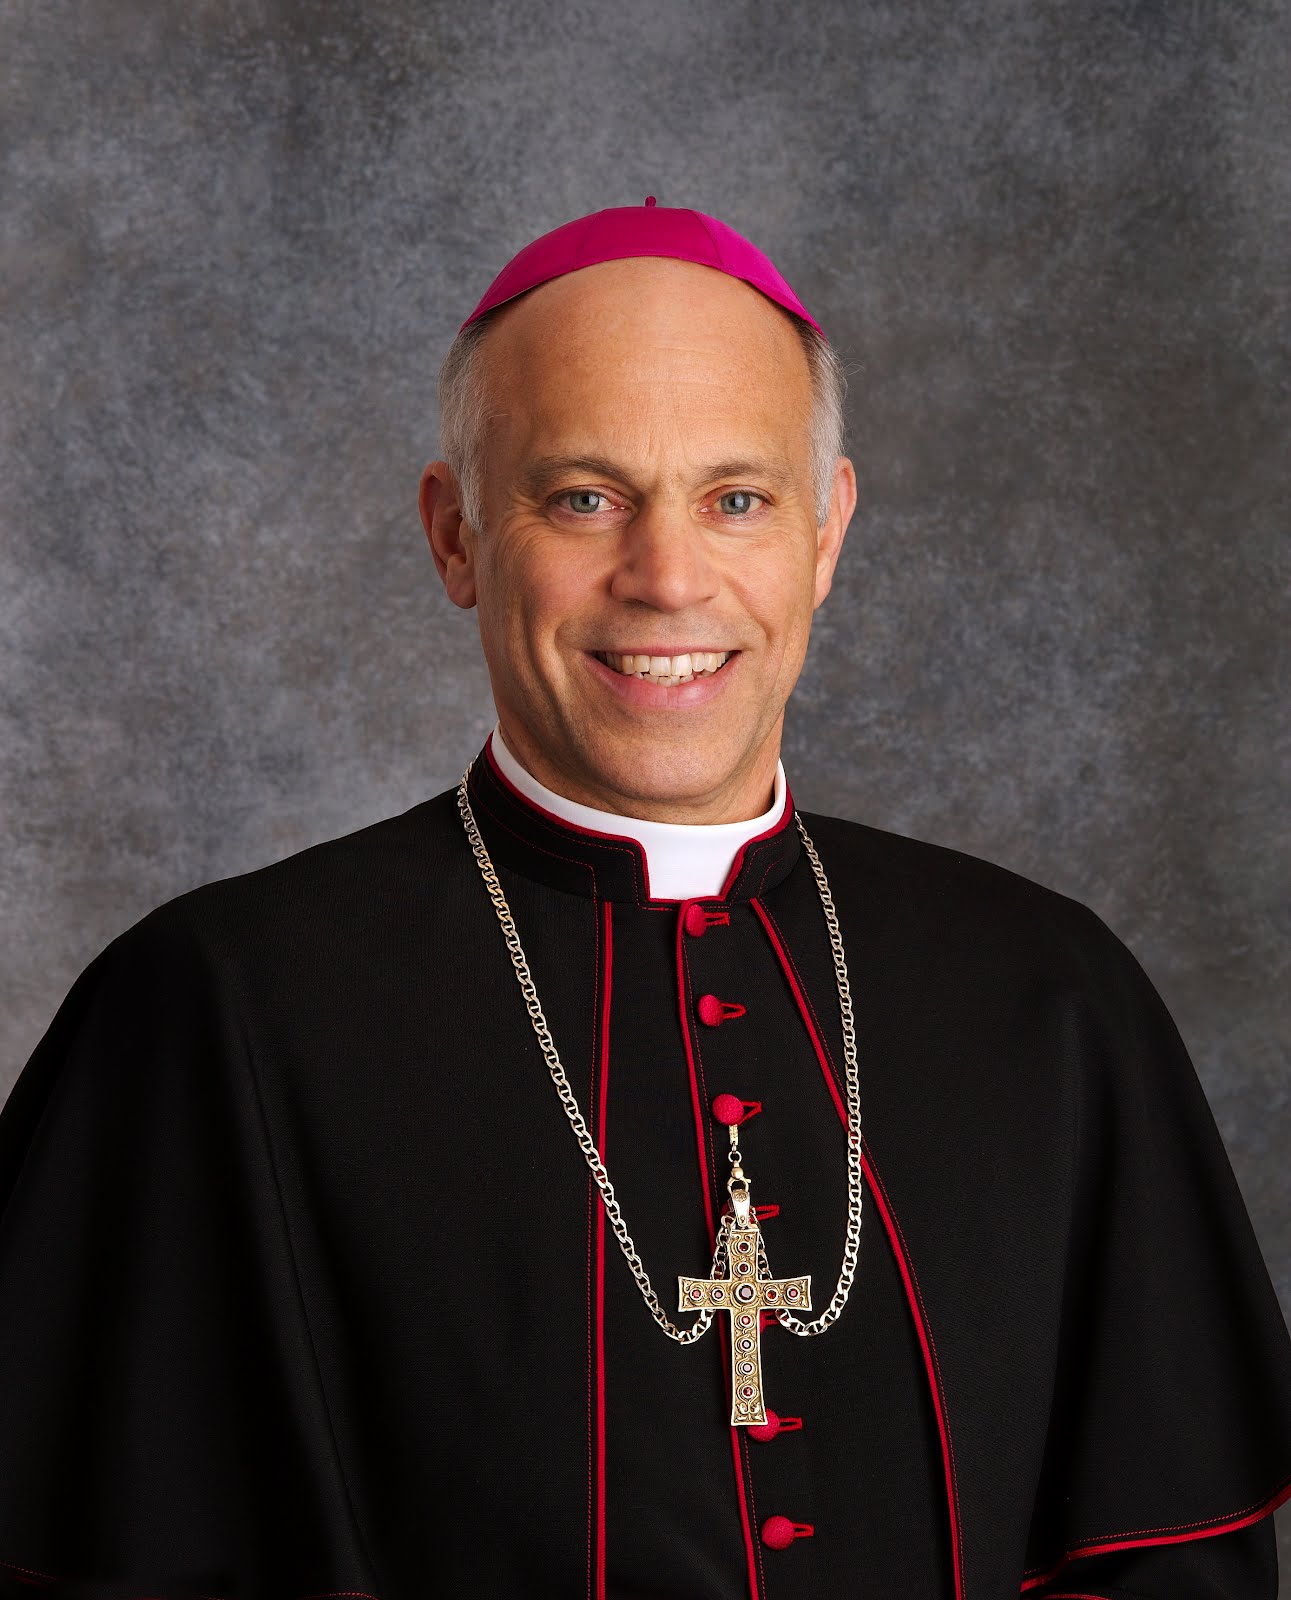 SF Archbishop Makes No Apologies For Attending Anti-Gay Rally, Yet Asks For Open-Mindedness